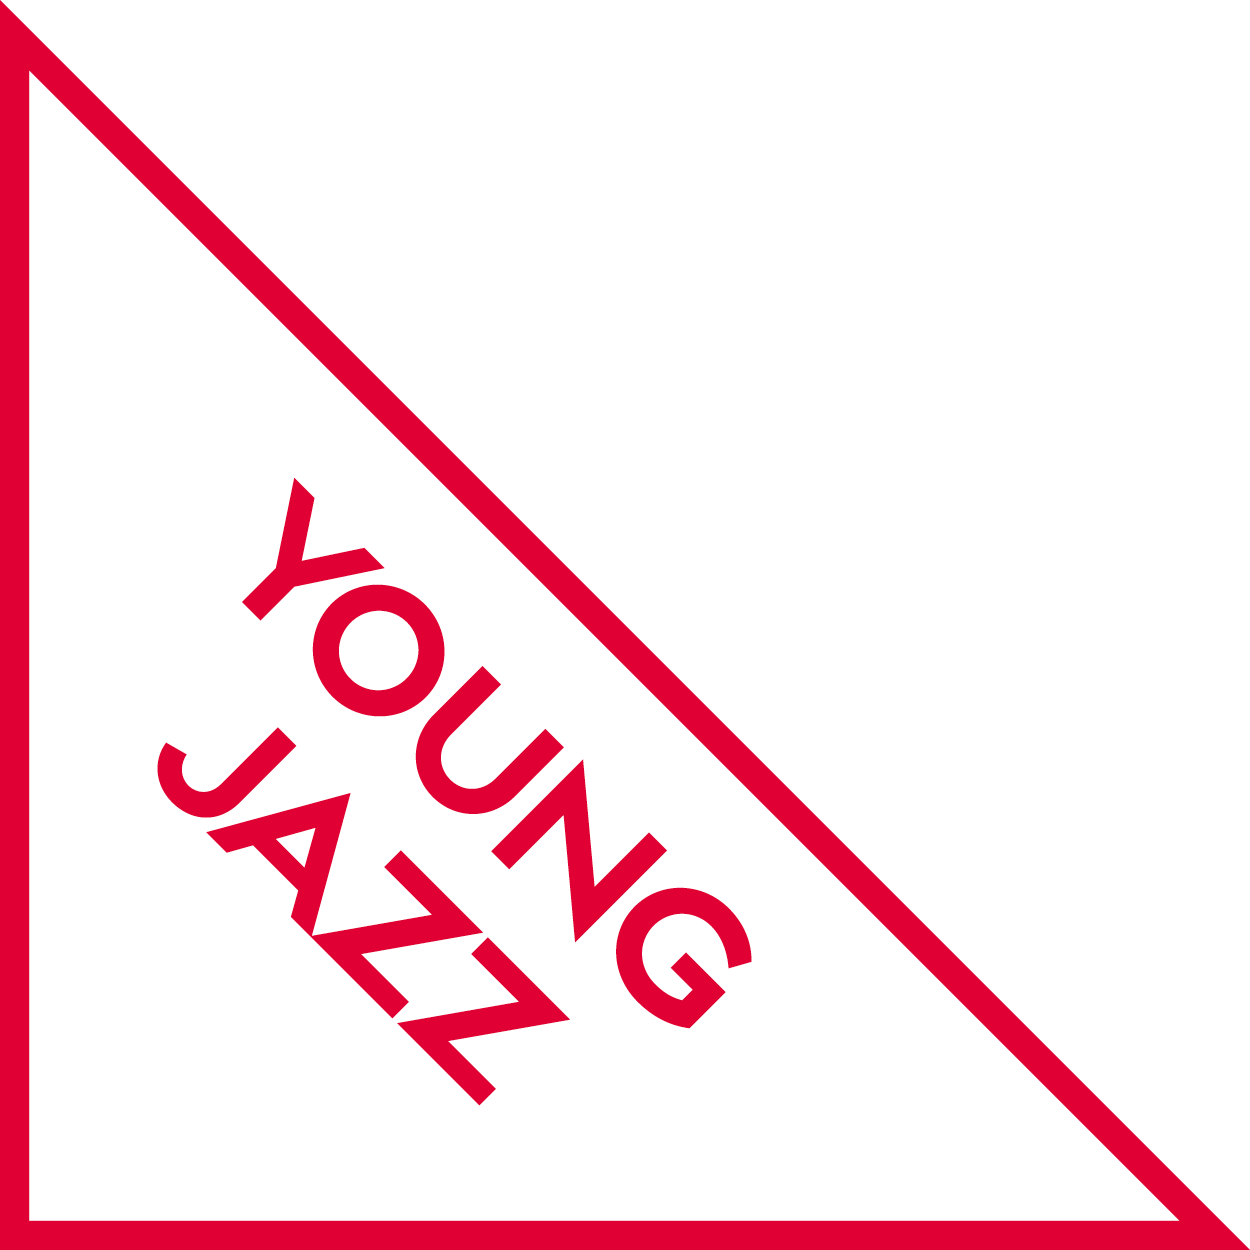 Jazz-Overlay-Young-Jazz-0419